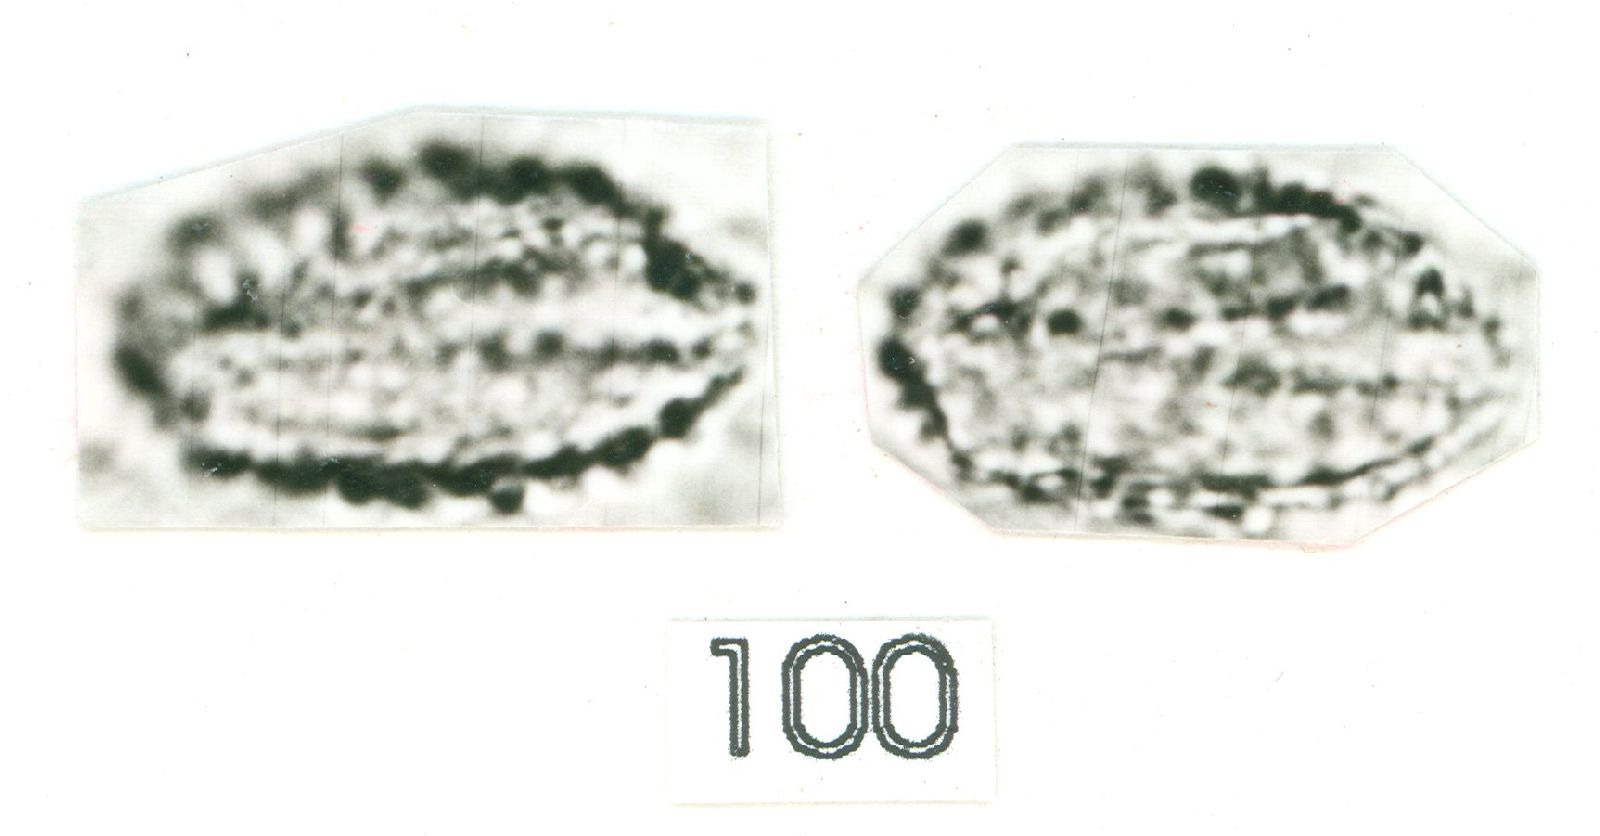 Anthurium flexile image